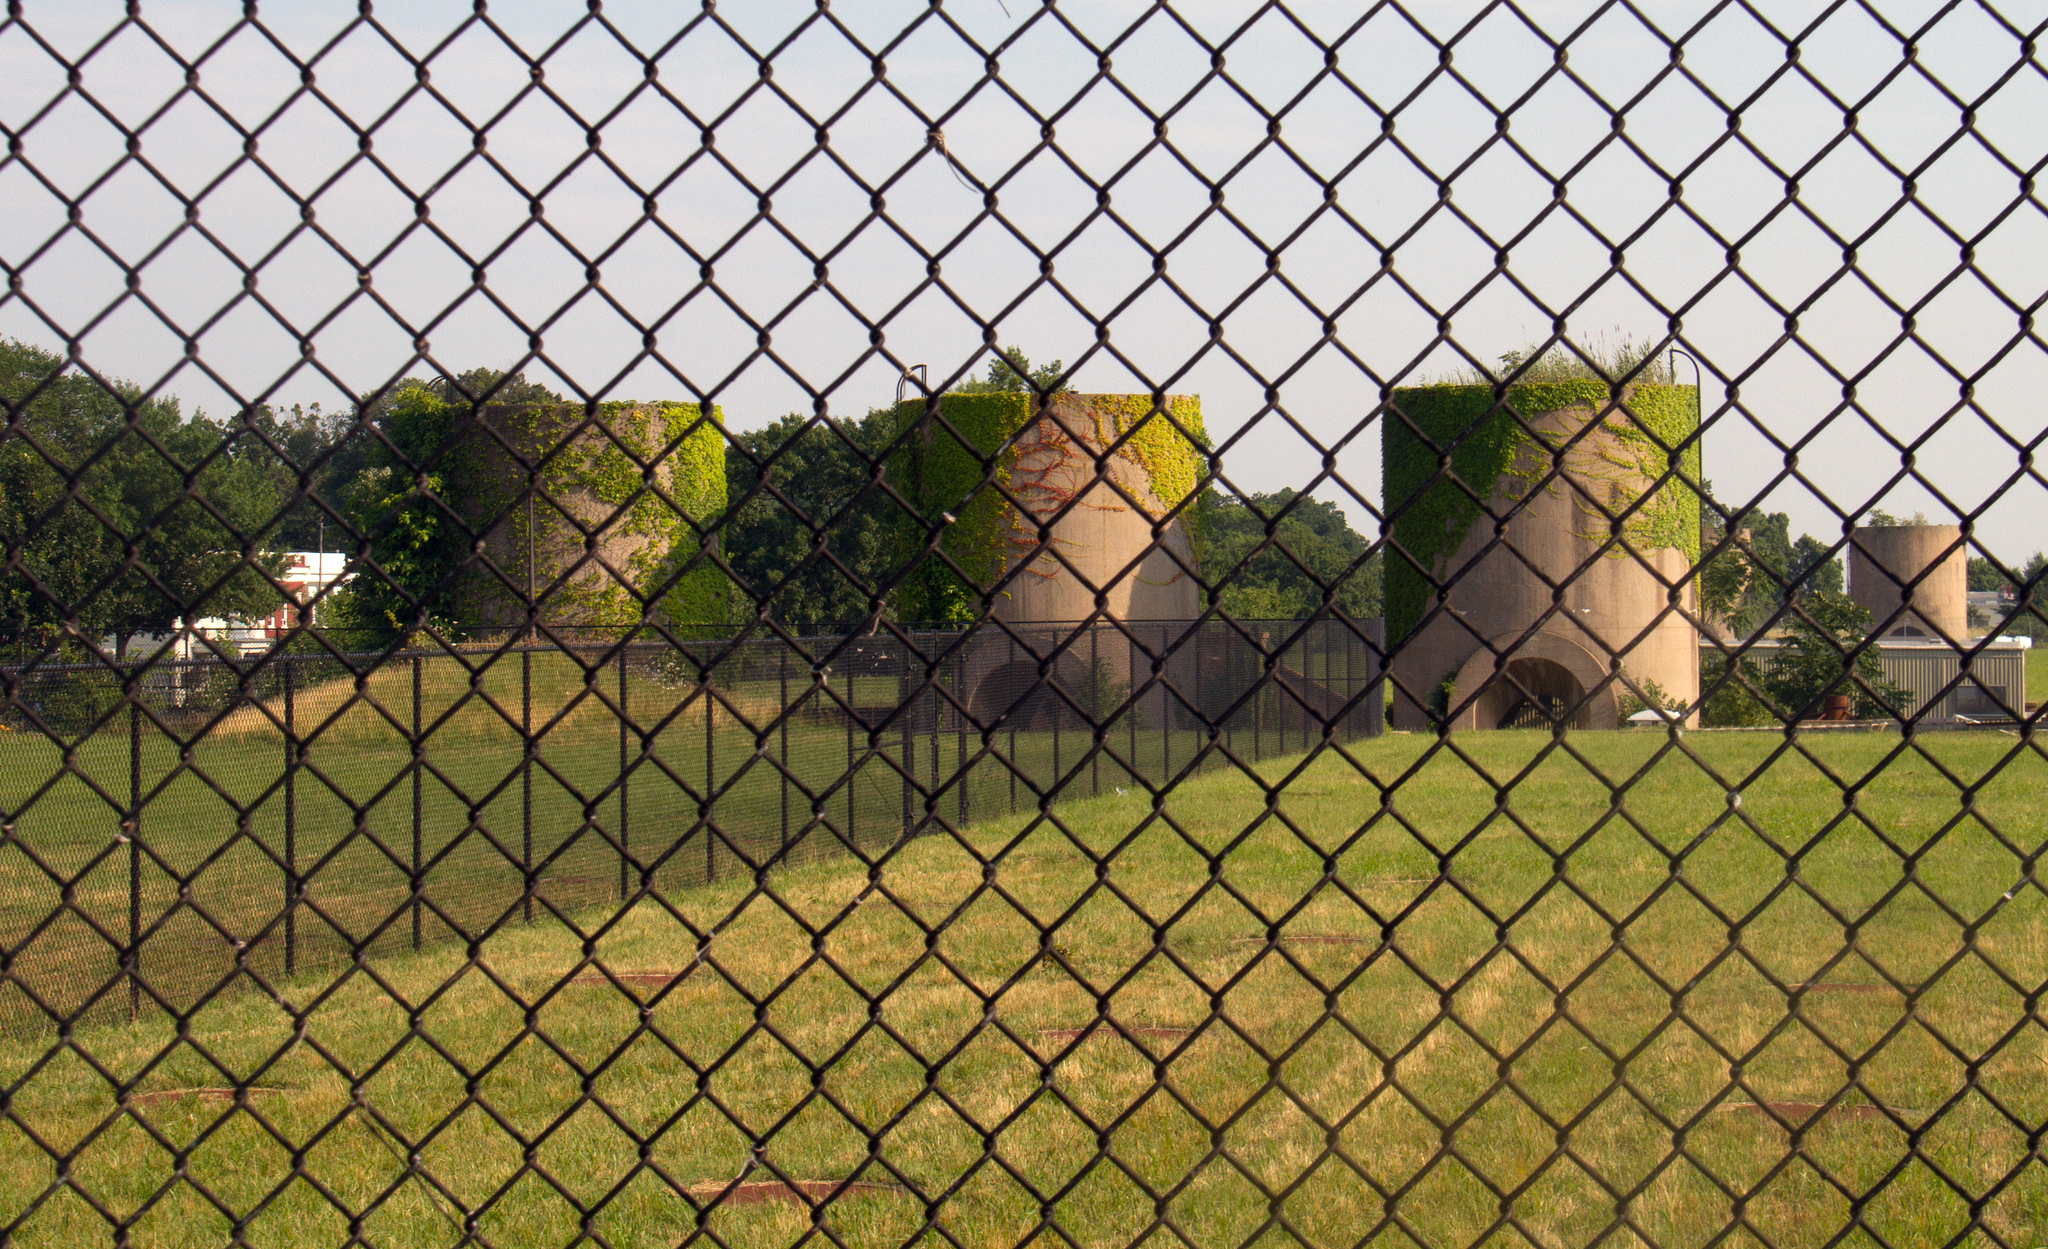 McMillan's sand silos seen in the summer of 2014. During warmer months the silos come alive with lovely ivy plantings left over from the Olmsted landscape design. Photo:   Flickr user David  /CC BY 2.0